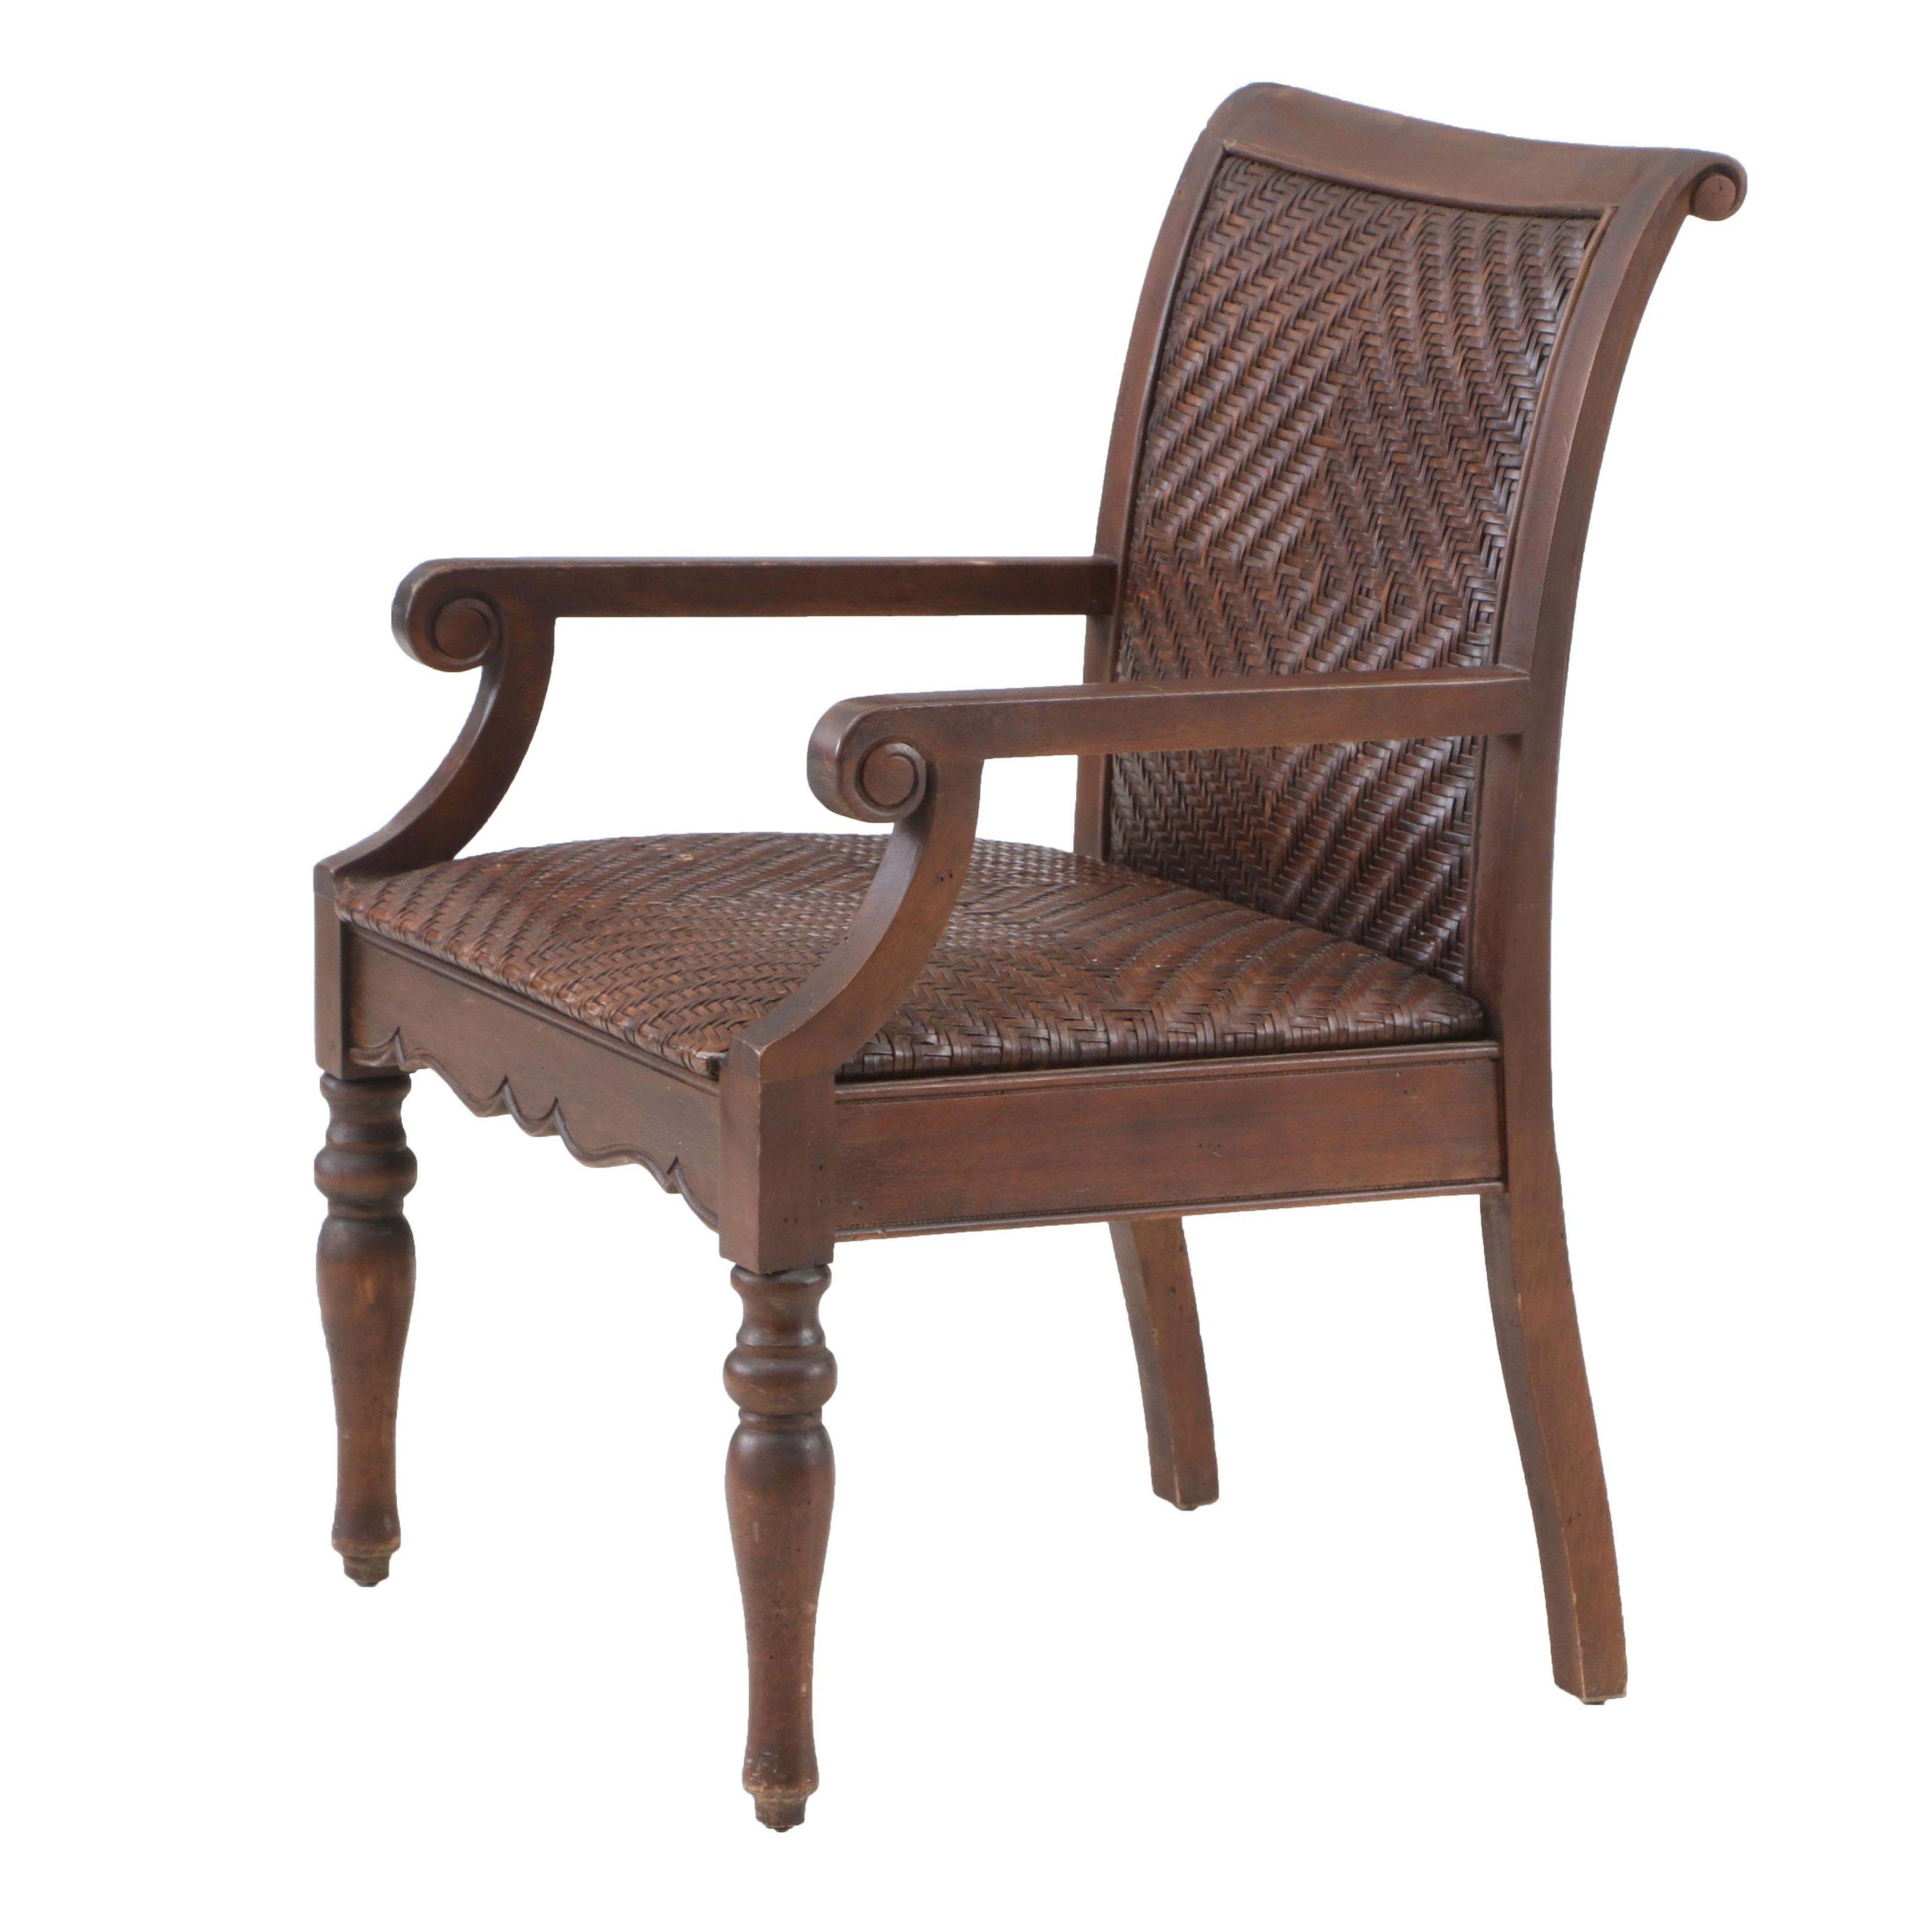 Contemporary Cane and Wood Armchair